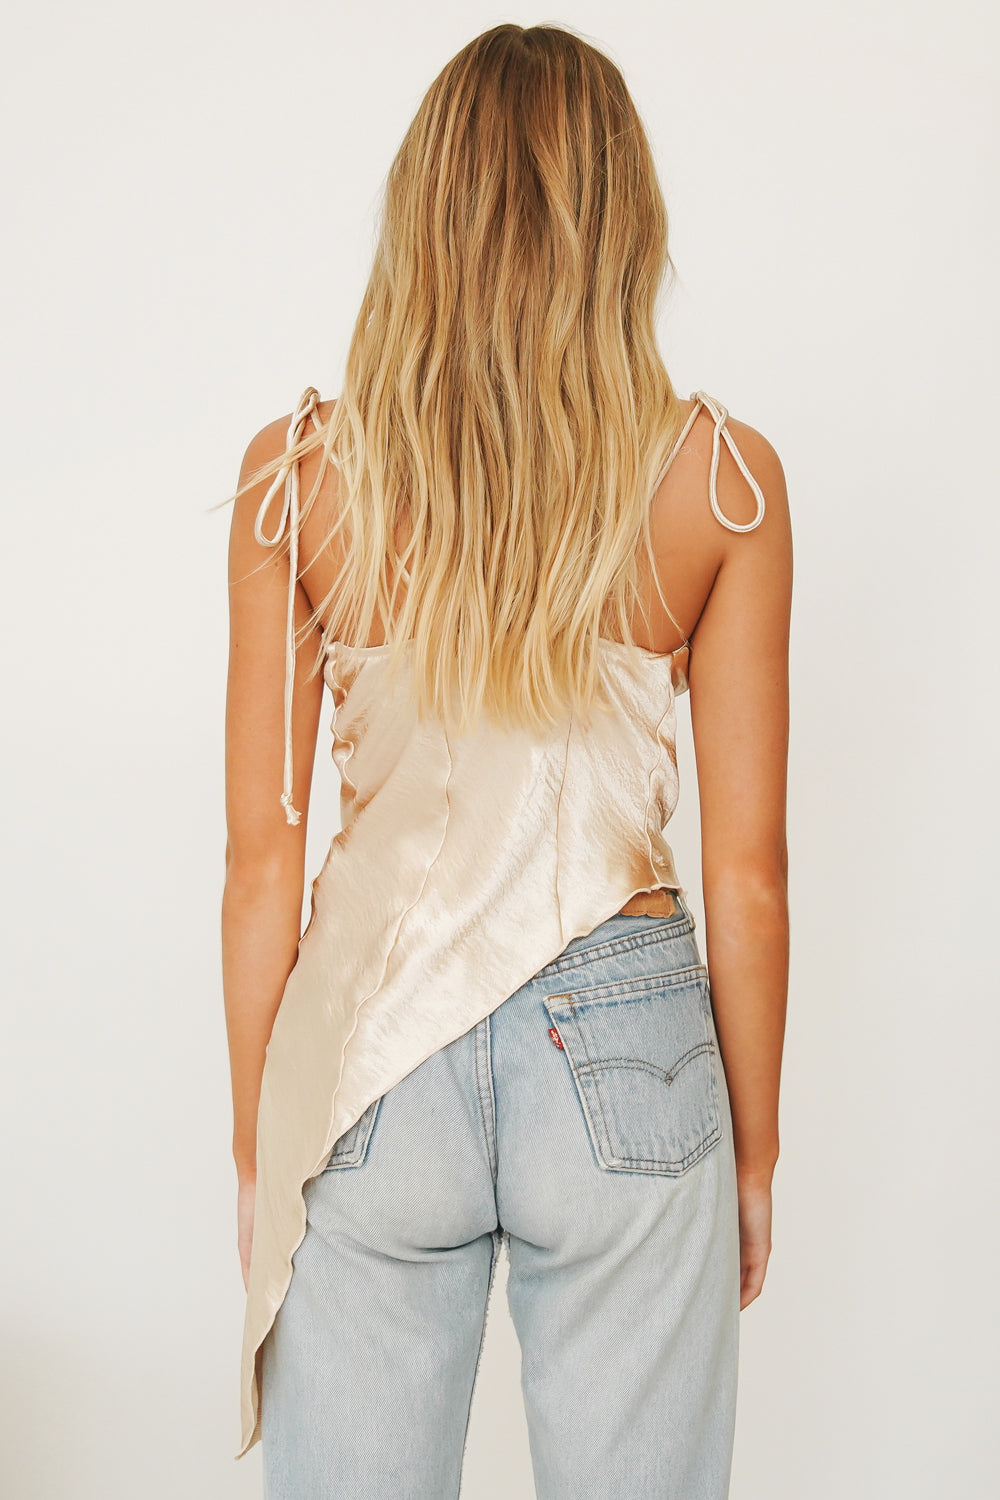 Sipping Wine Asymmetrical Top // Gold